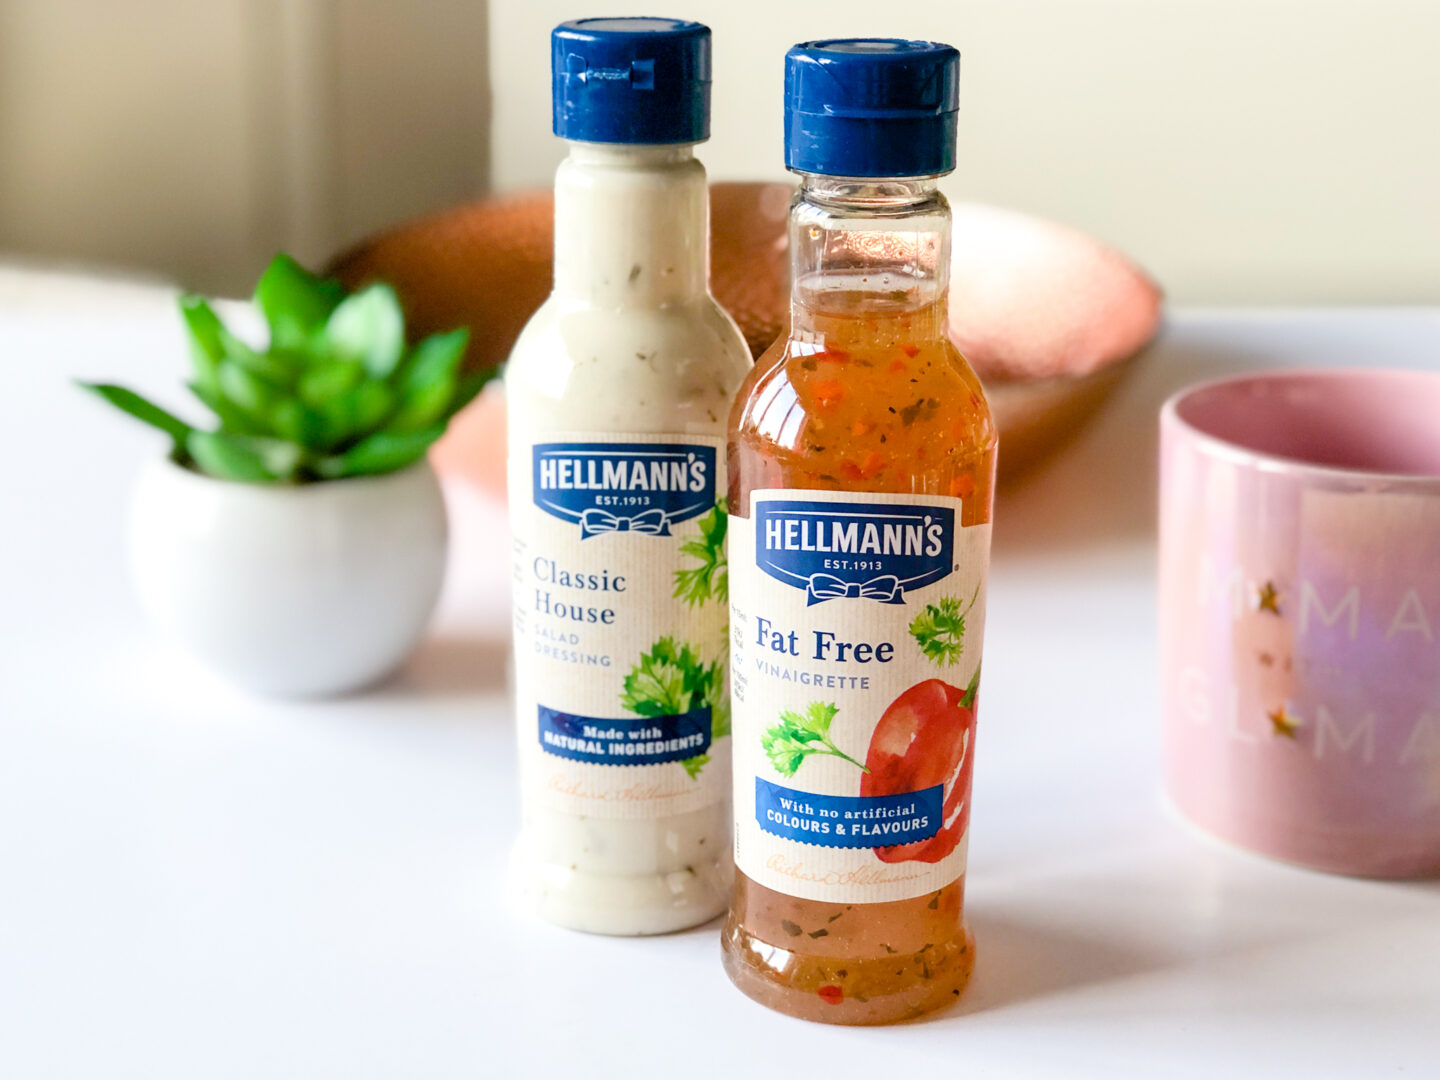 Hellman's Fat-Free Salad Dressing and House Salad Dressing - May 2020 Degusta Box